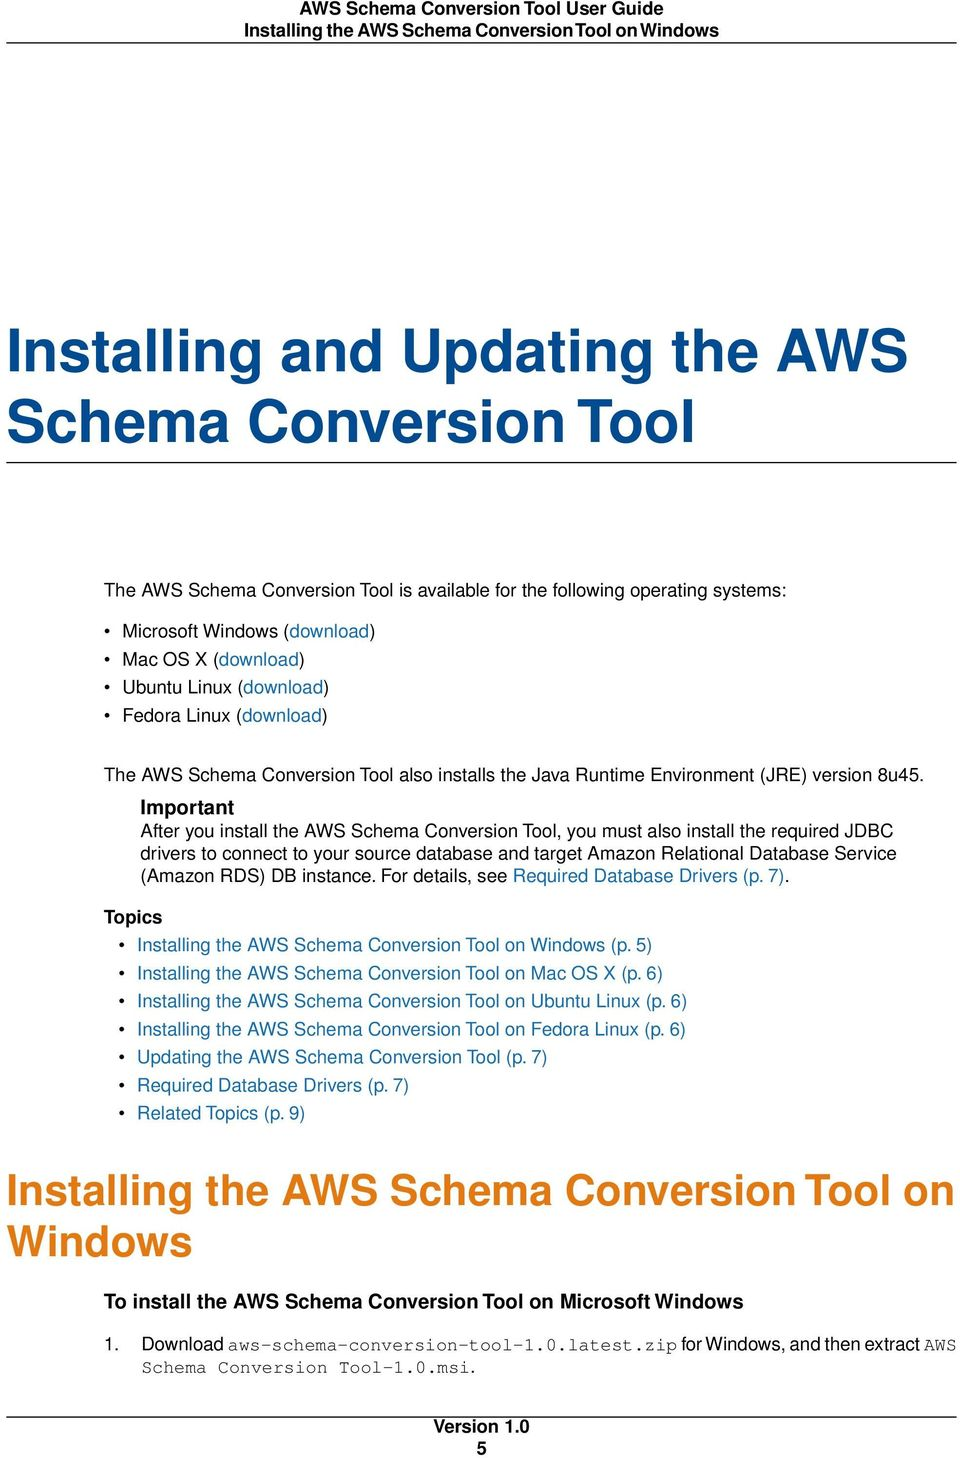 AWS Schema Conversion Tool  User Guide Version PDF